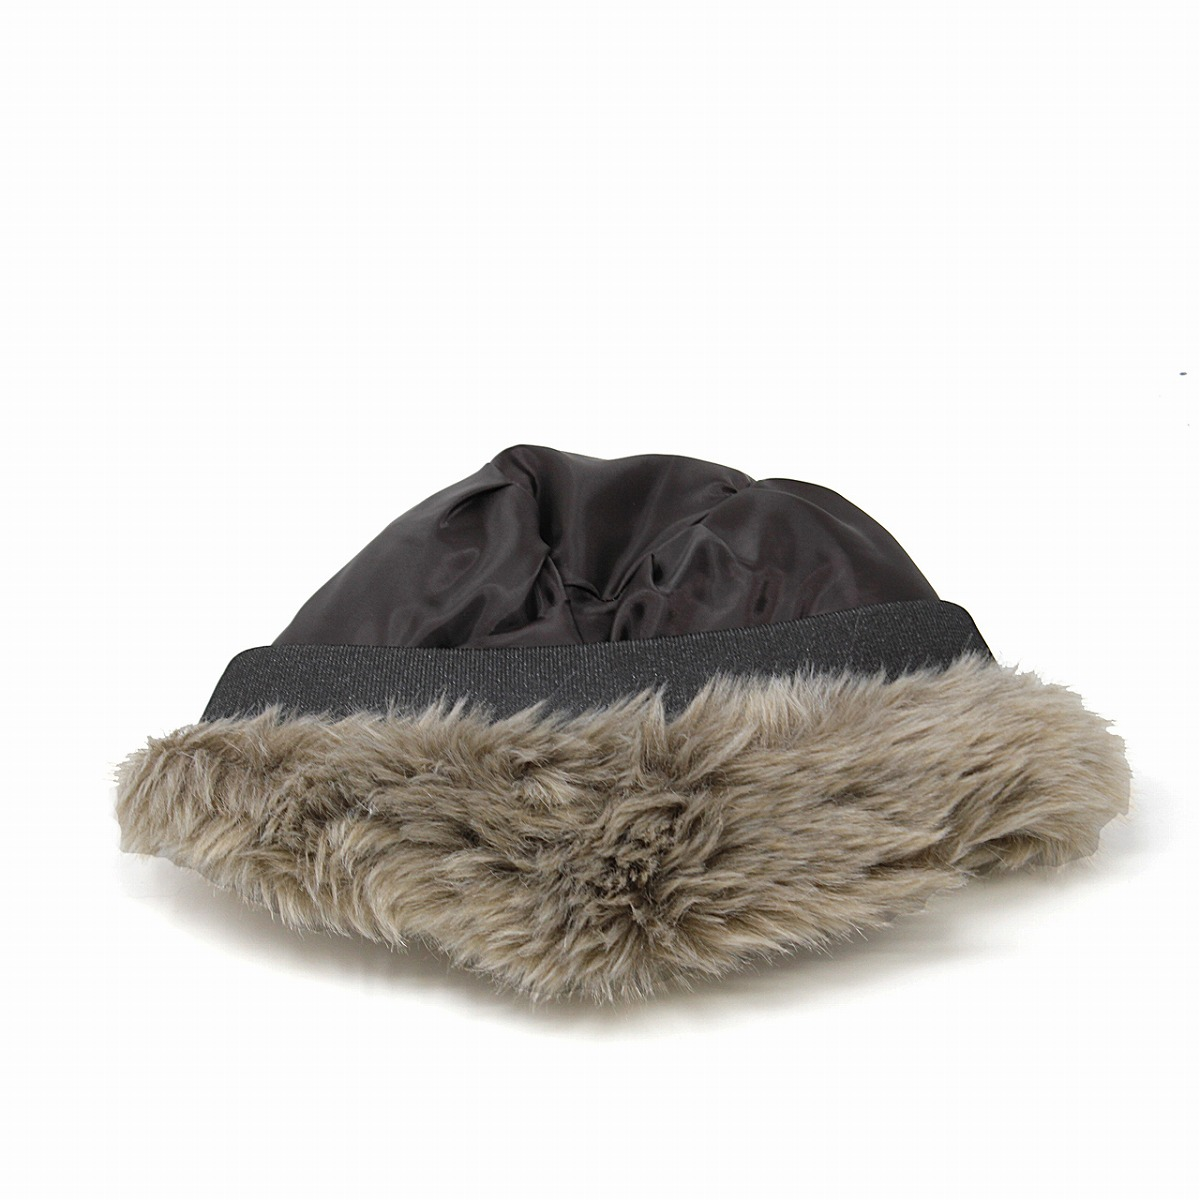 95117223d Roberto idea ROBERTidea Russia hat hat fur foreign countries buran mud cyan  hat Lady's hat tea brown (Christmas gift packing lapping free of charge) ...